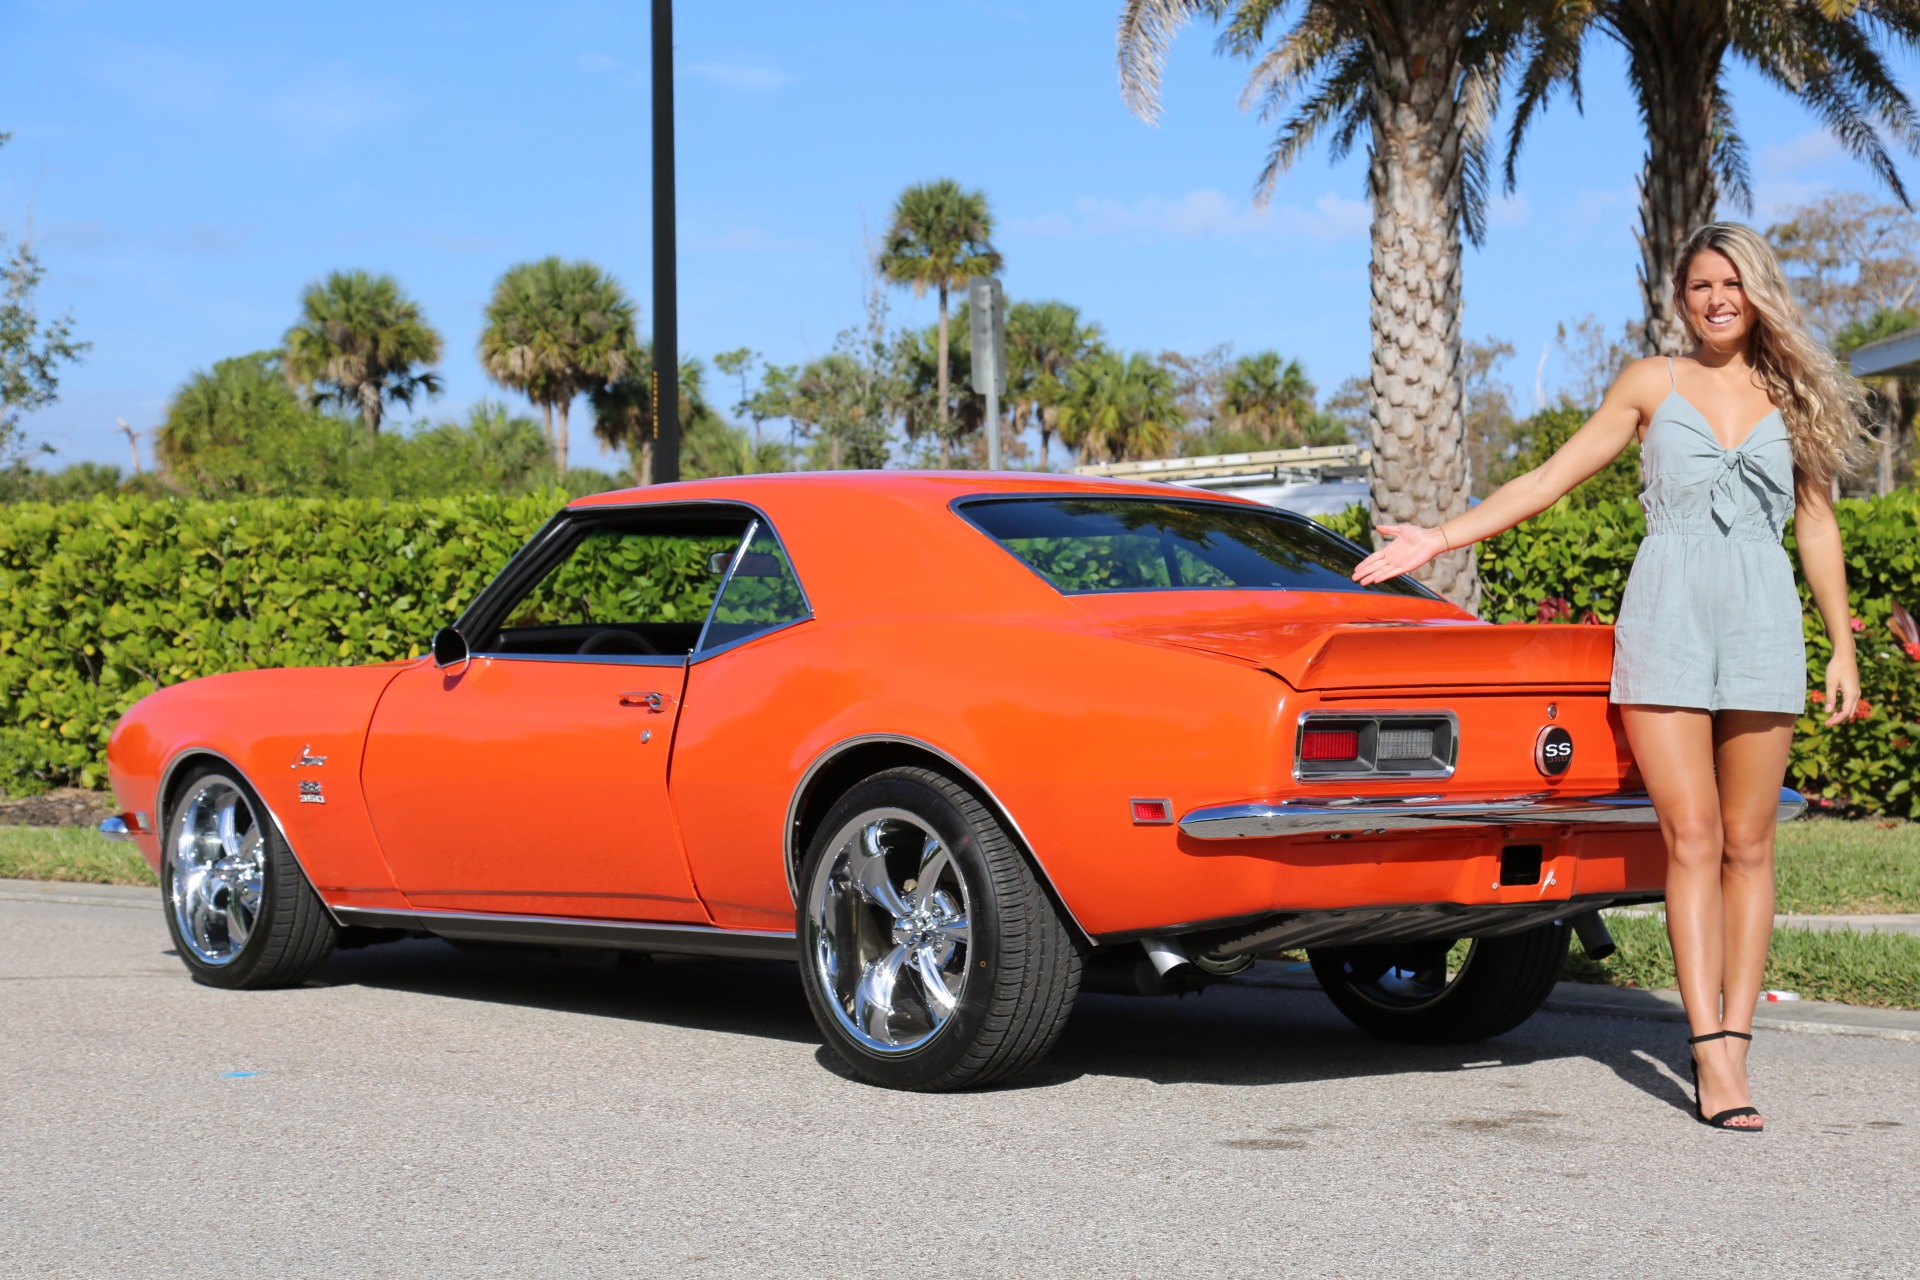 Used 1968 Chevy Camaro V8 4 Speed Manual for sale $31,000 at Muscle Cars for Sale Inc. in Fort Myers FL 33912 5